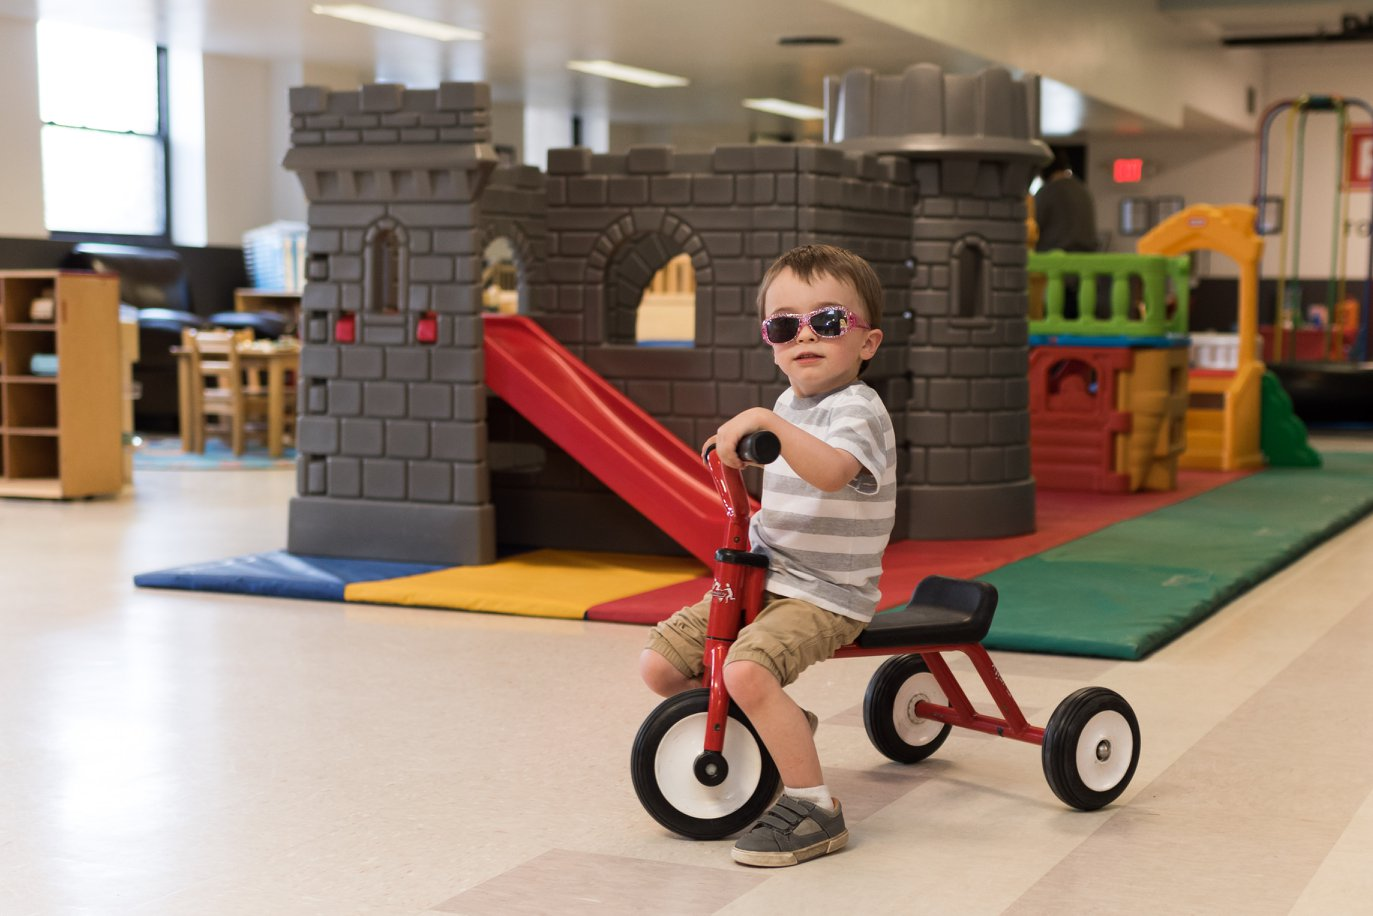 A boy wearing sunglasses is riding a tricycle at The Toy Lending Library